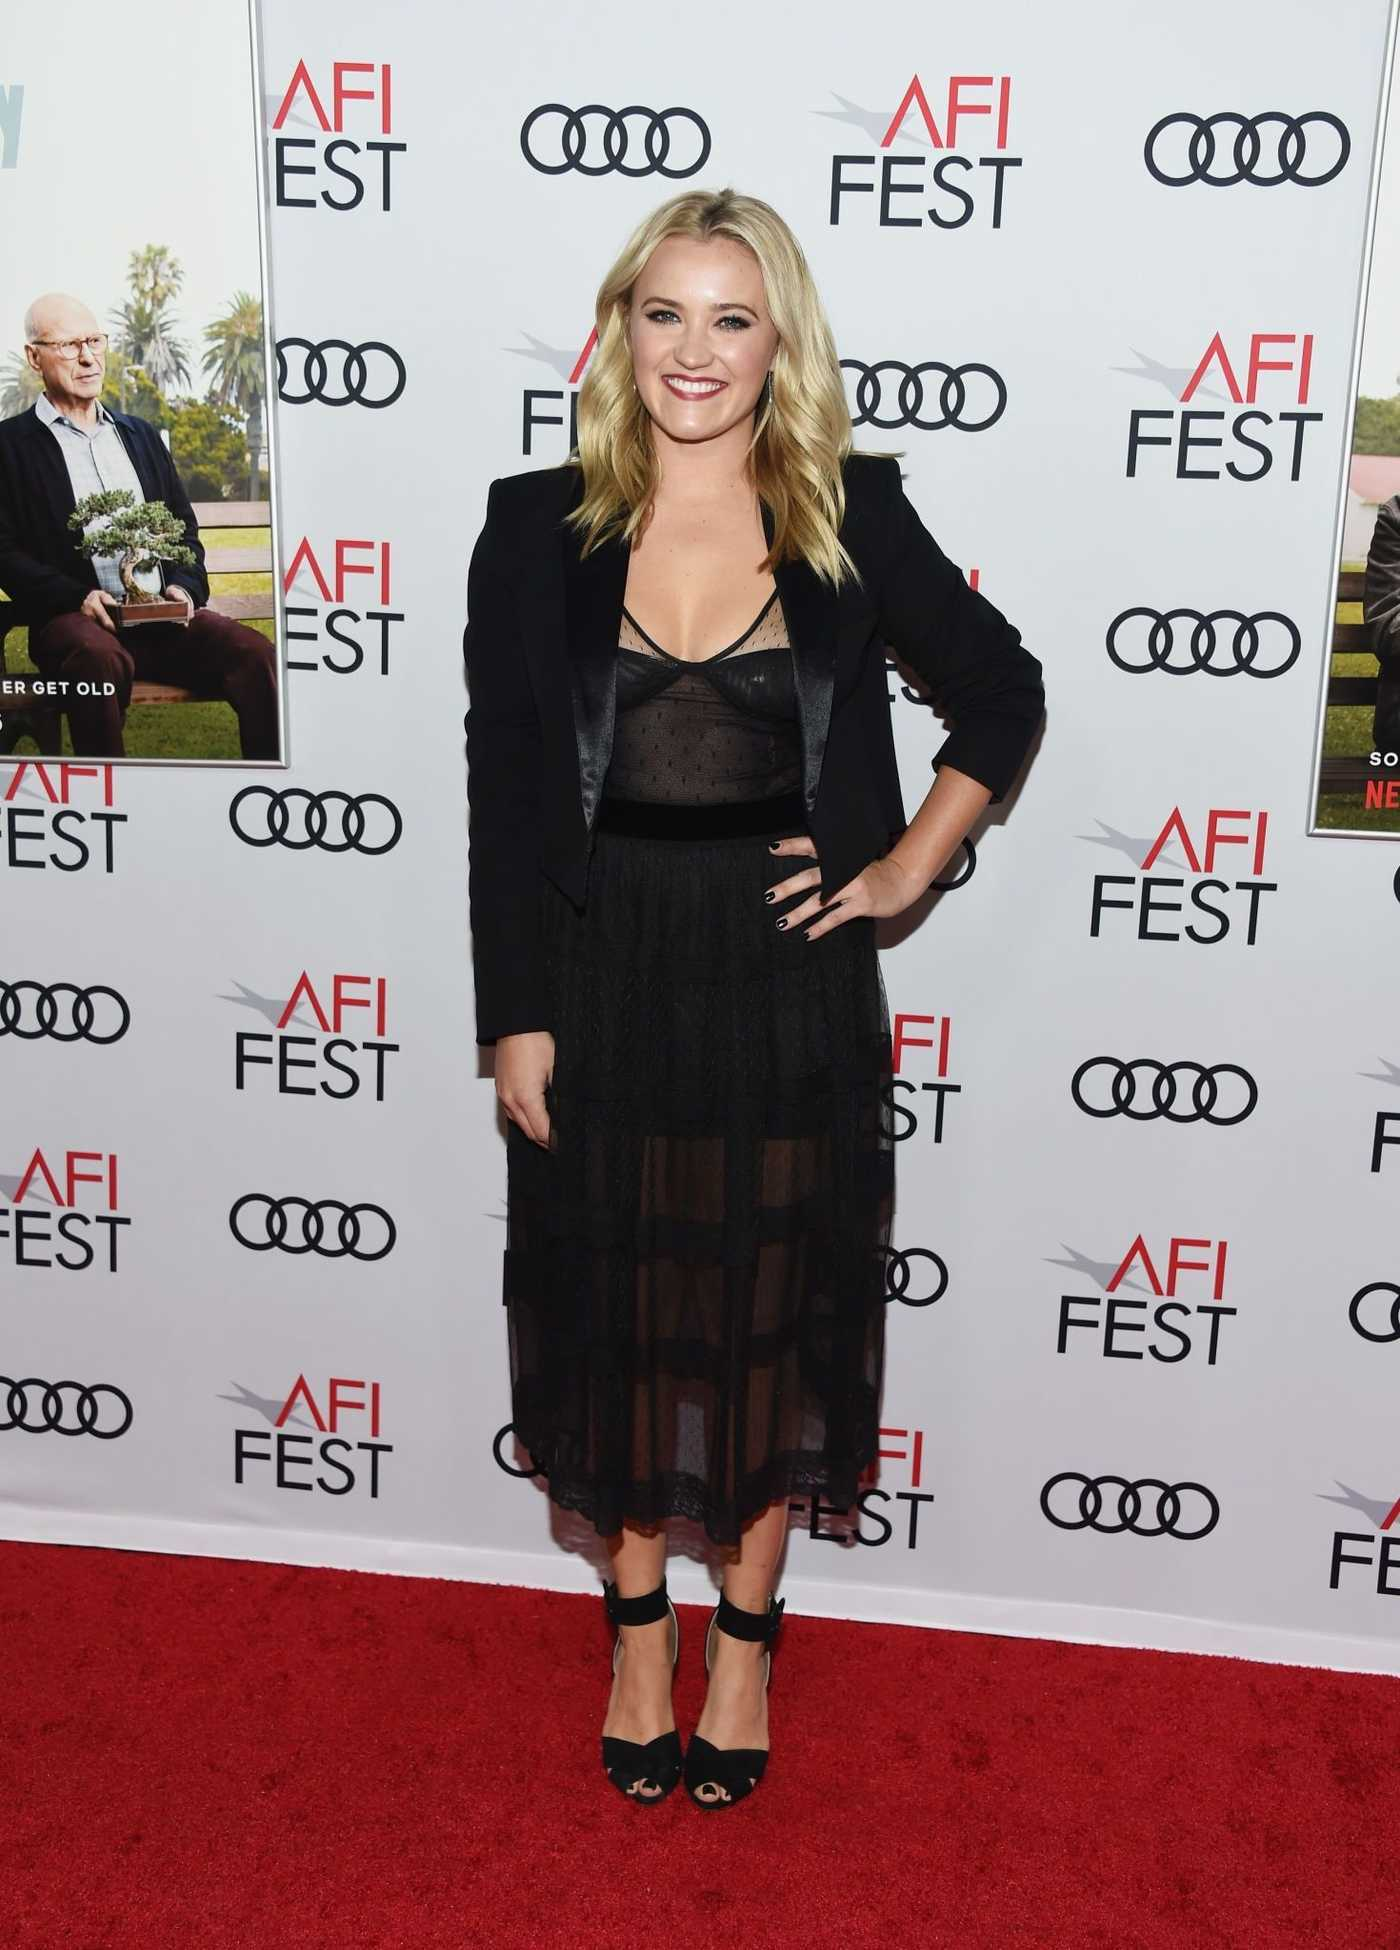 Emily Osment Attends the The Kominsky Method Screening During 2018 AFI FEST in Hollywood 11/09/2018